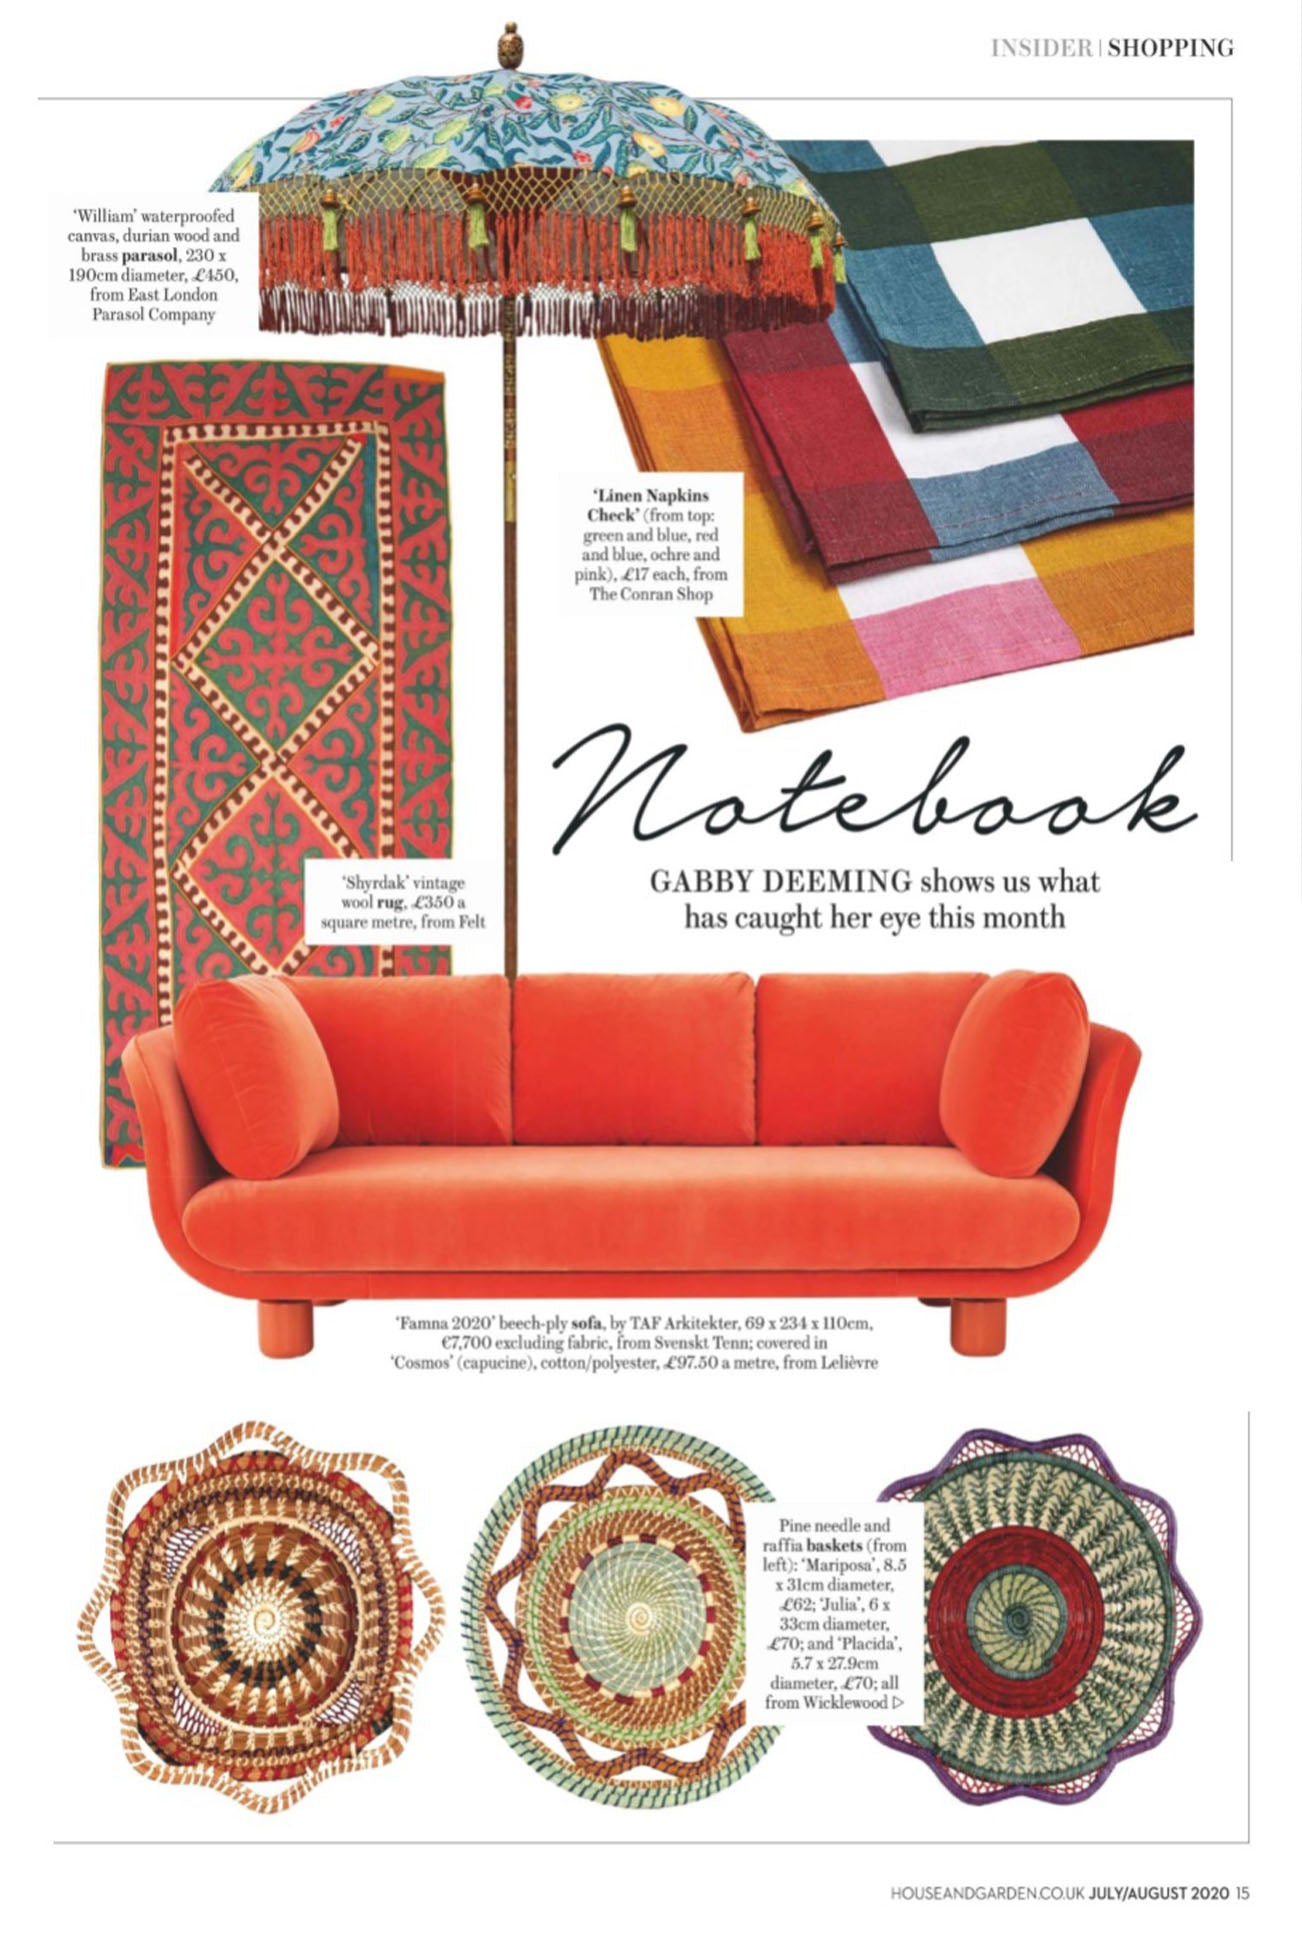 wicklewood handcrafted baskets featured in House and Garden July issue